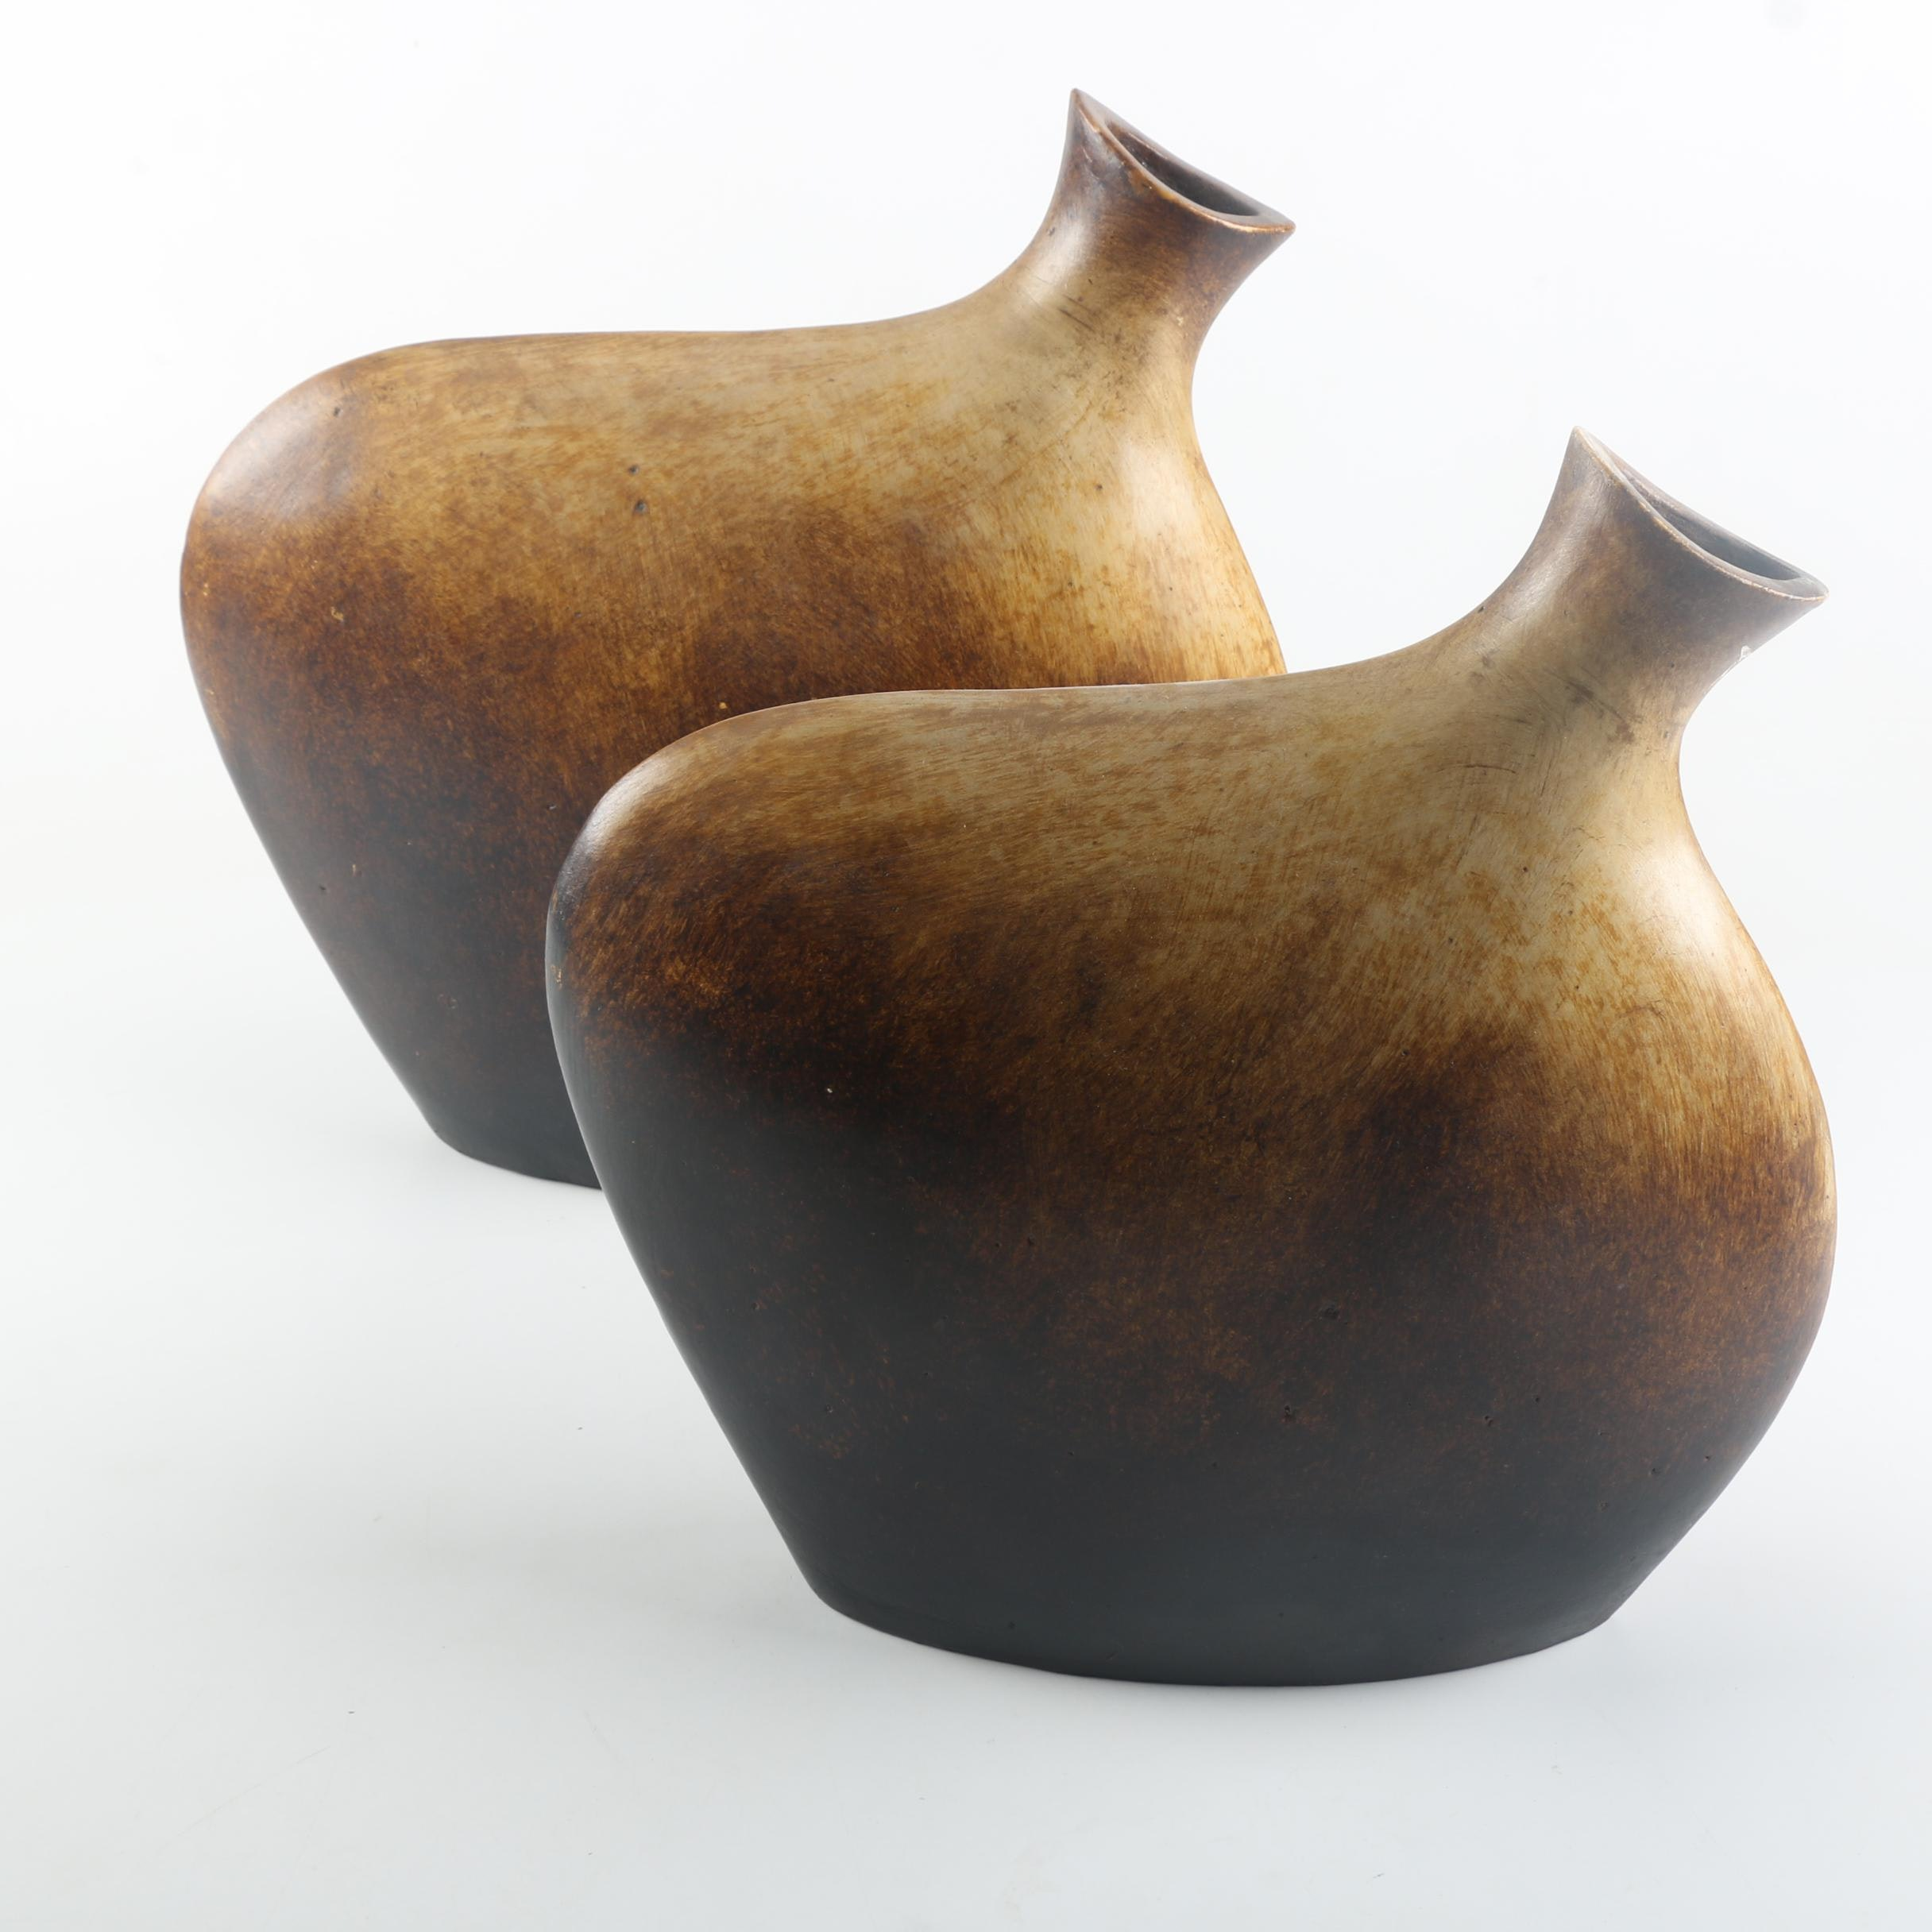 Two Decorative Egg Shaped Vases